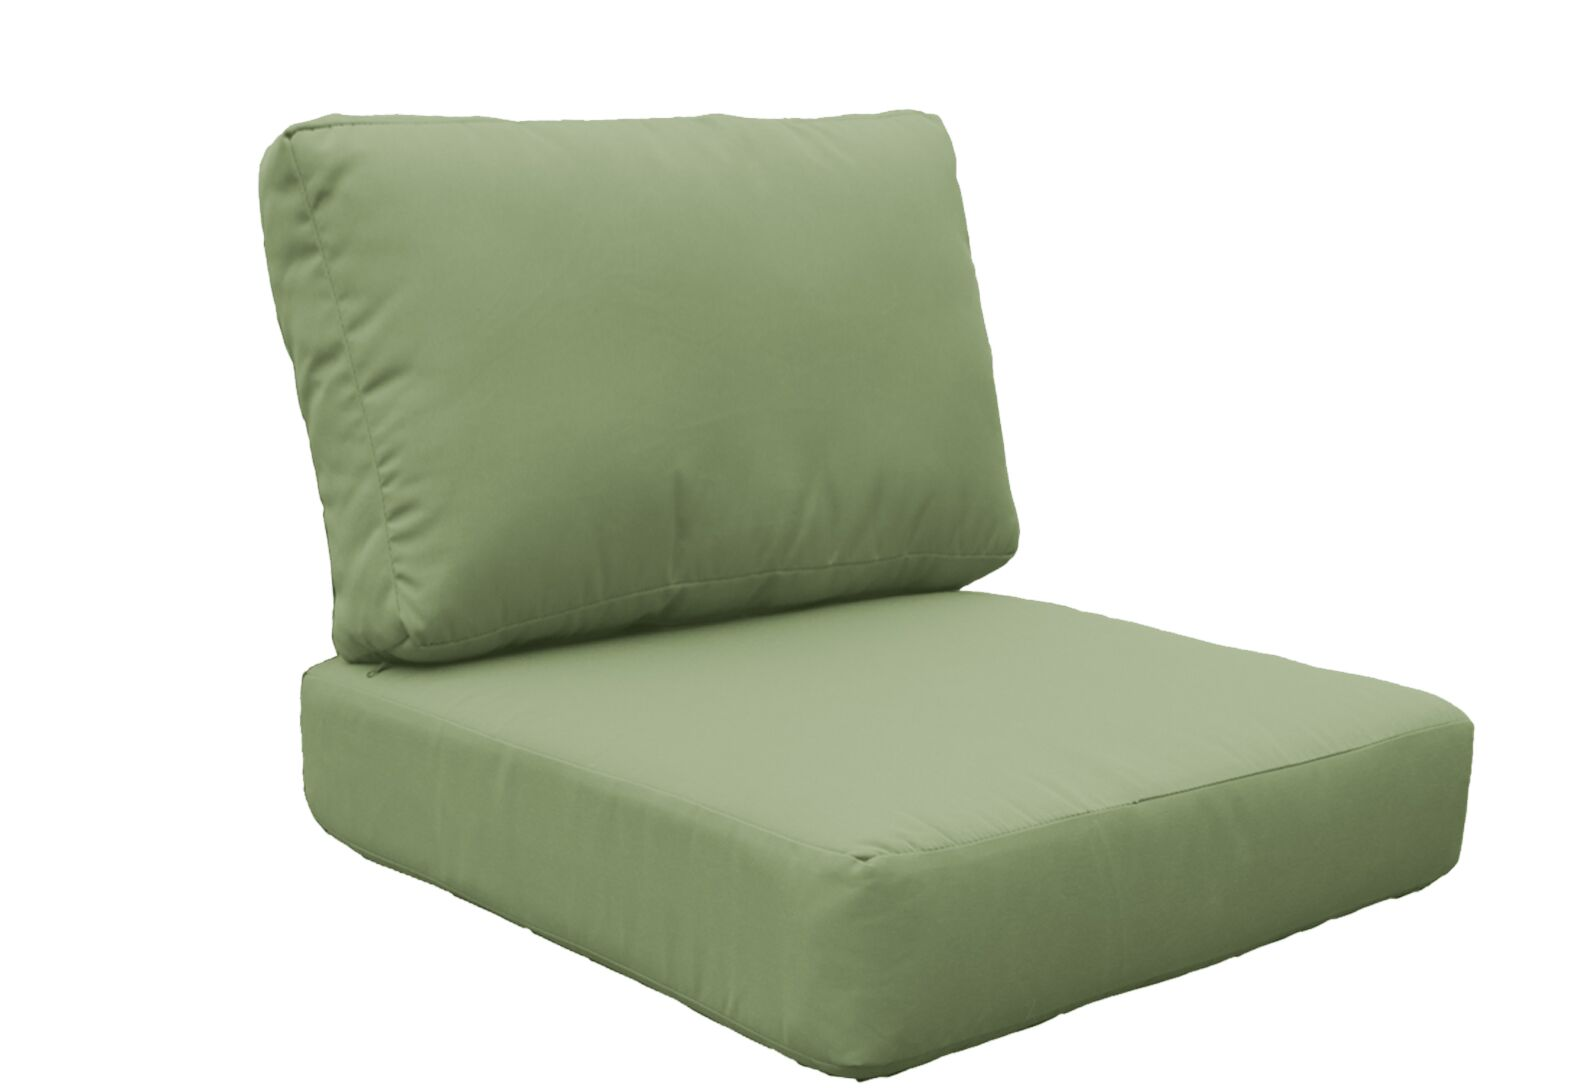 Miami 8 Piece Outdoor Lounge Chair Cushion Set Fabric: Cilantro